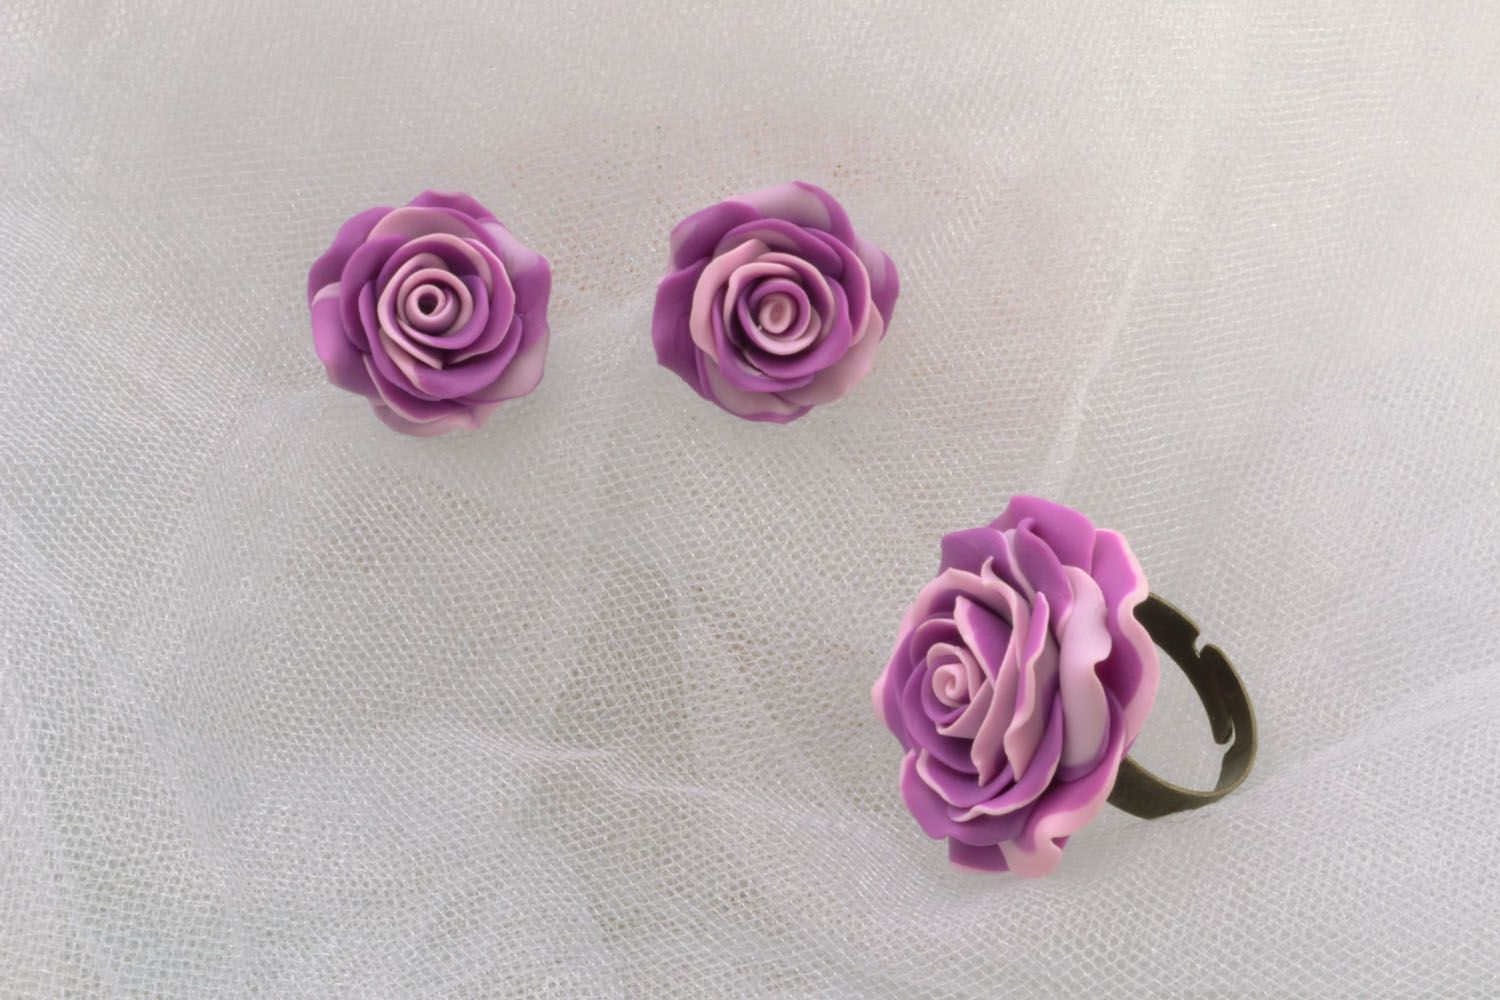 Design ring and earrings photo 1